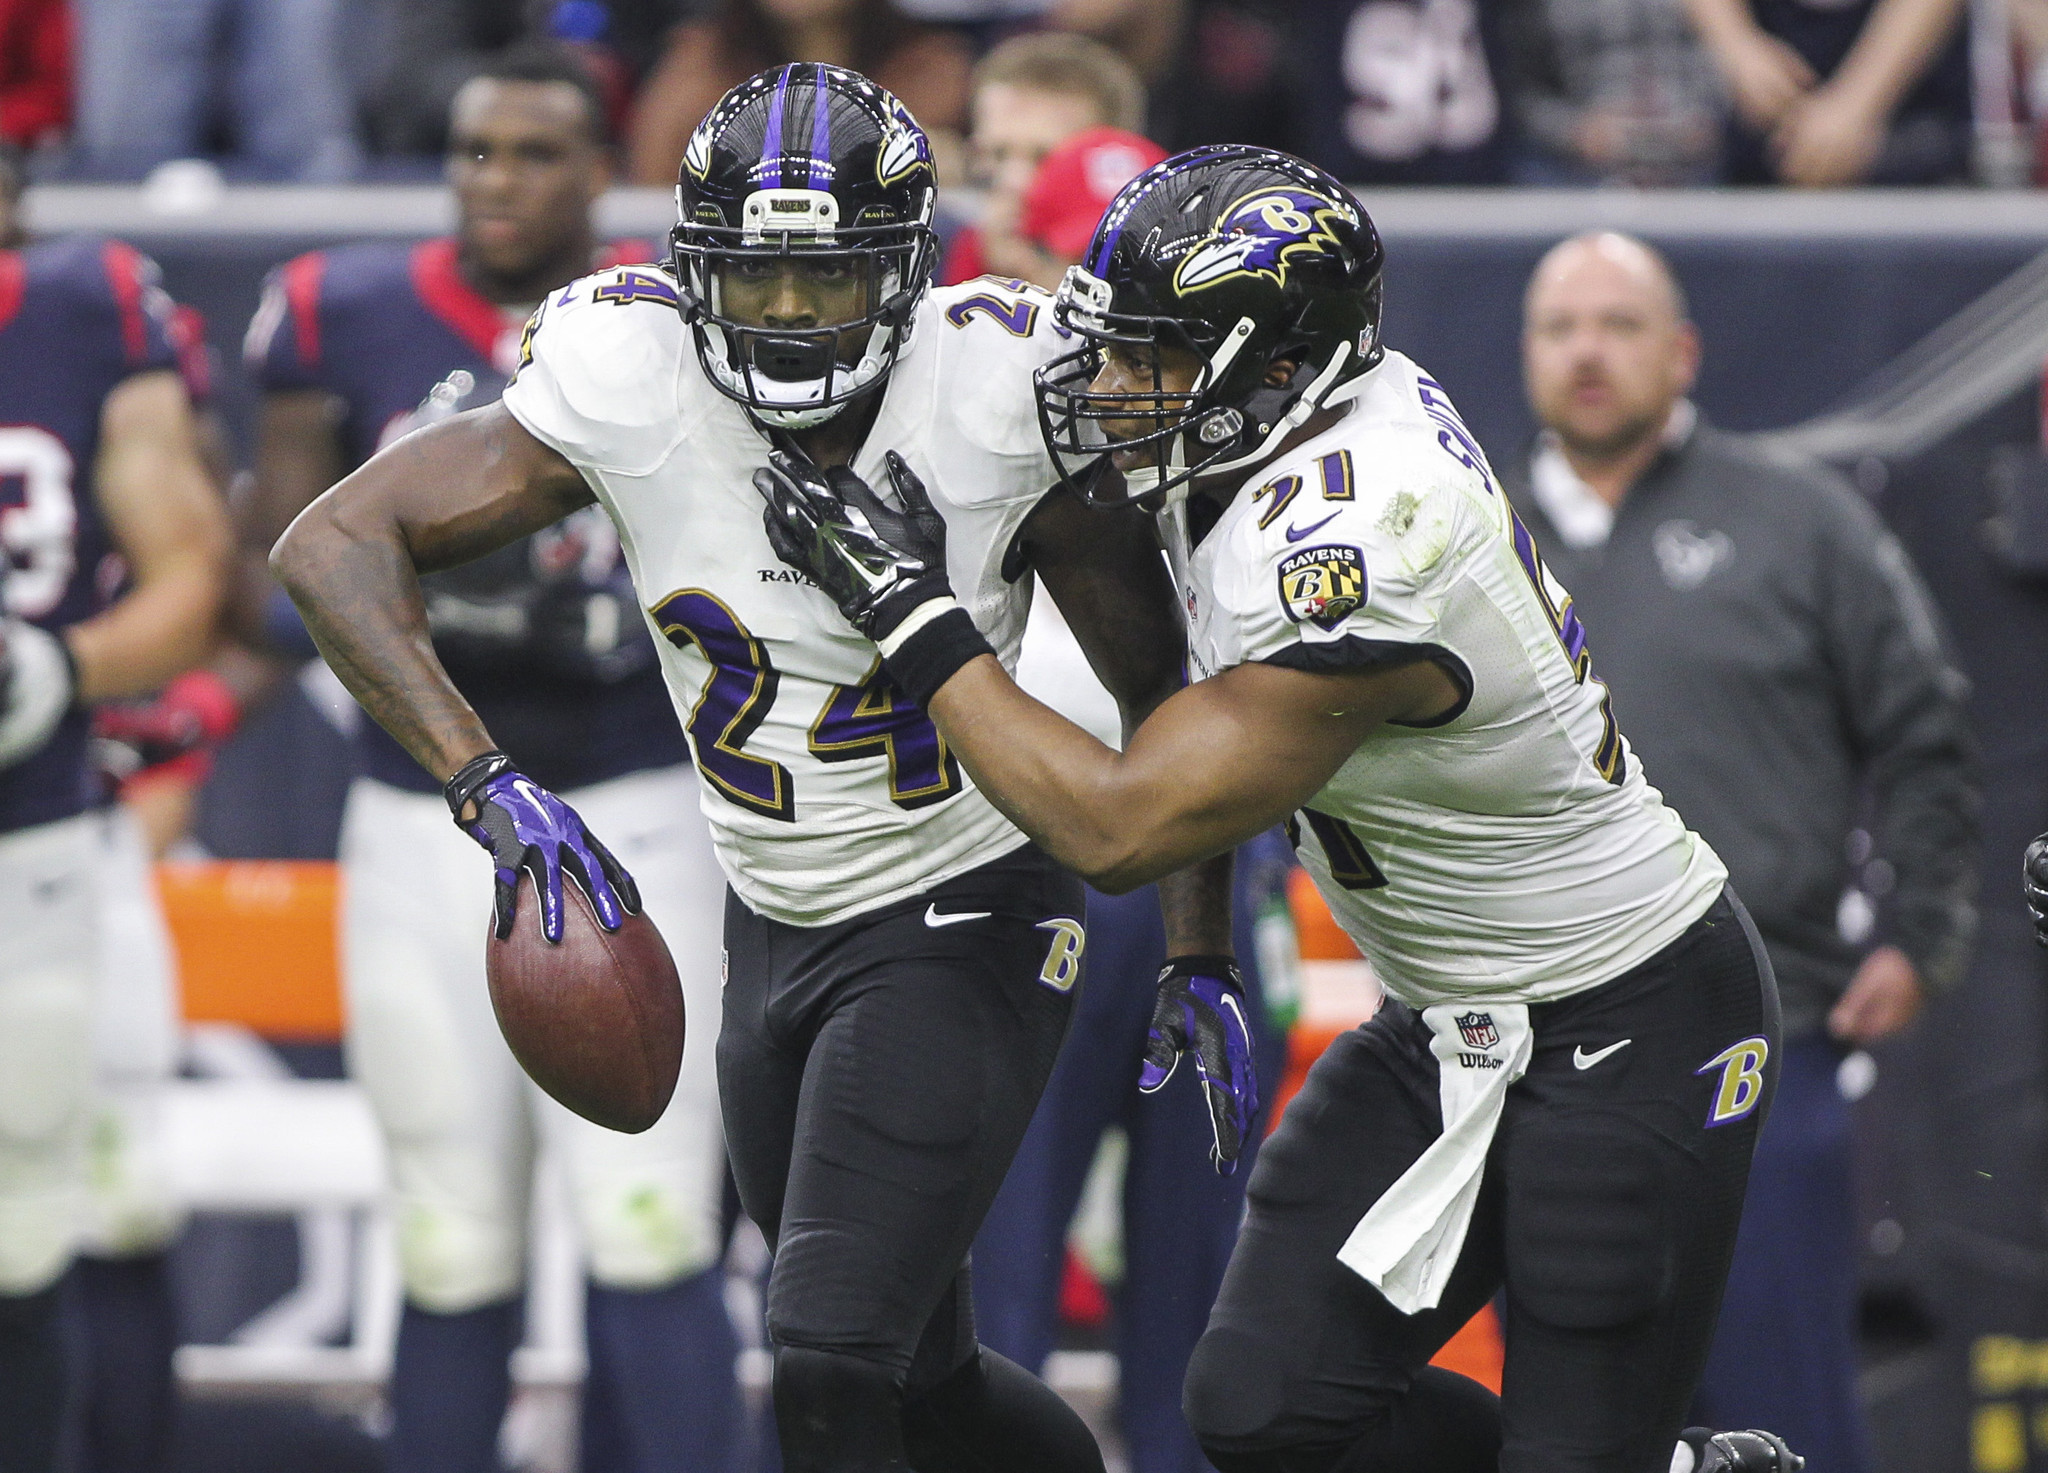 Bal-ravens-news-and-notes-20160208